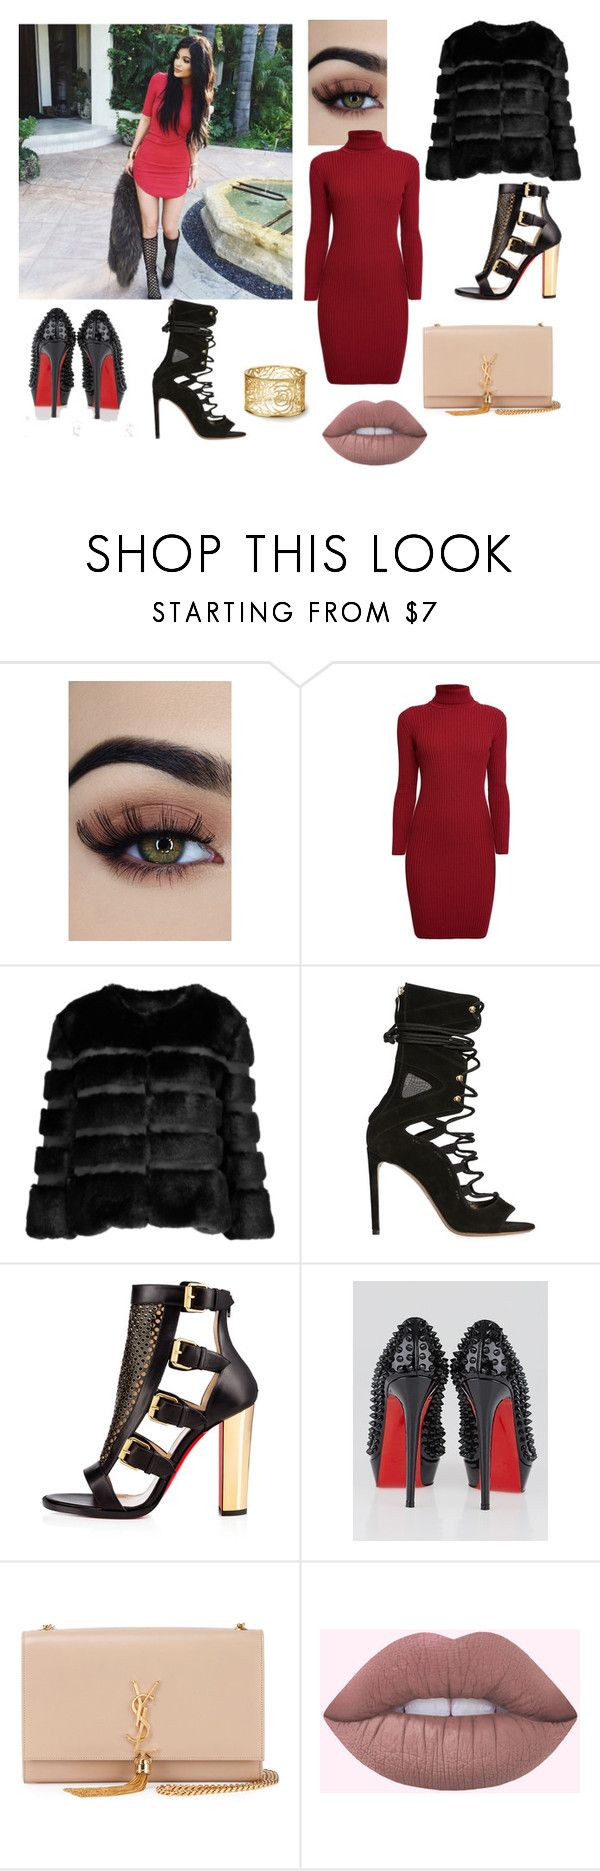 """kylie"" by juliesvankjaer on Polyvore featuring Jimmy Choo, Rumour London, AINEA, Alexandre Vauthier, Christian Louboutin and Yves Saint Laurent"